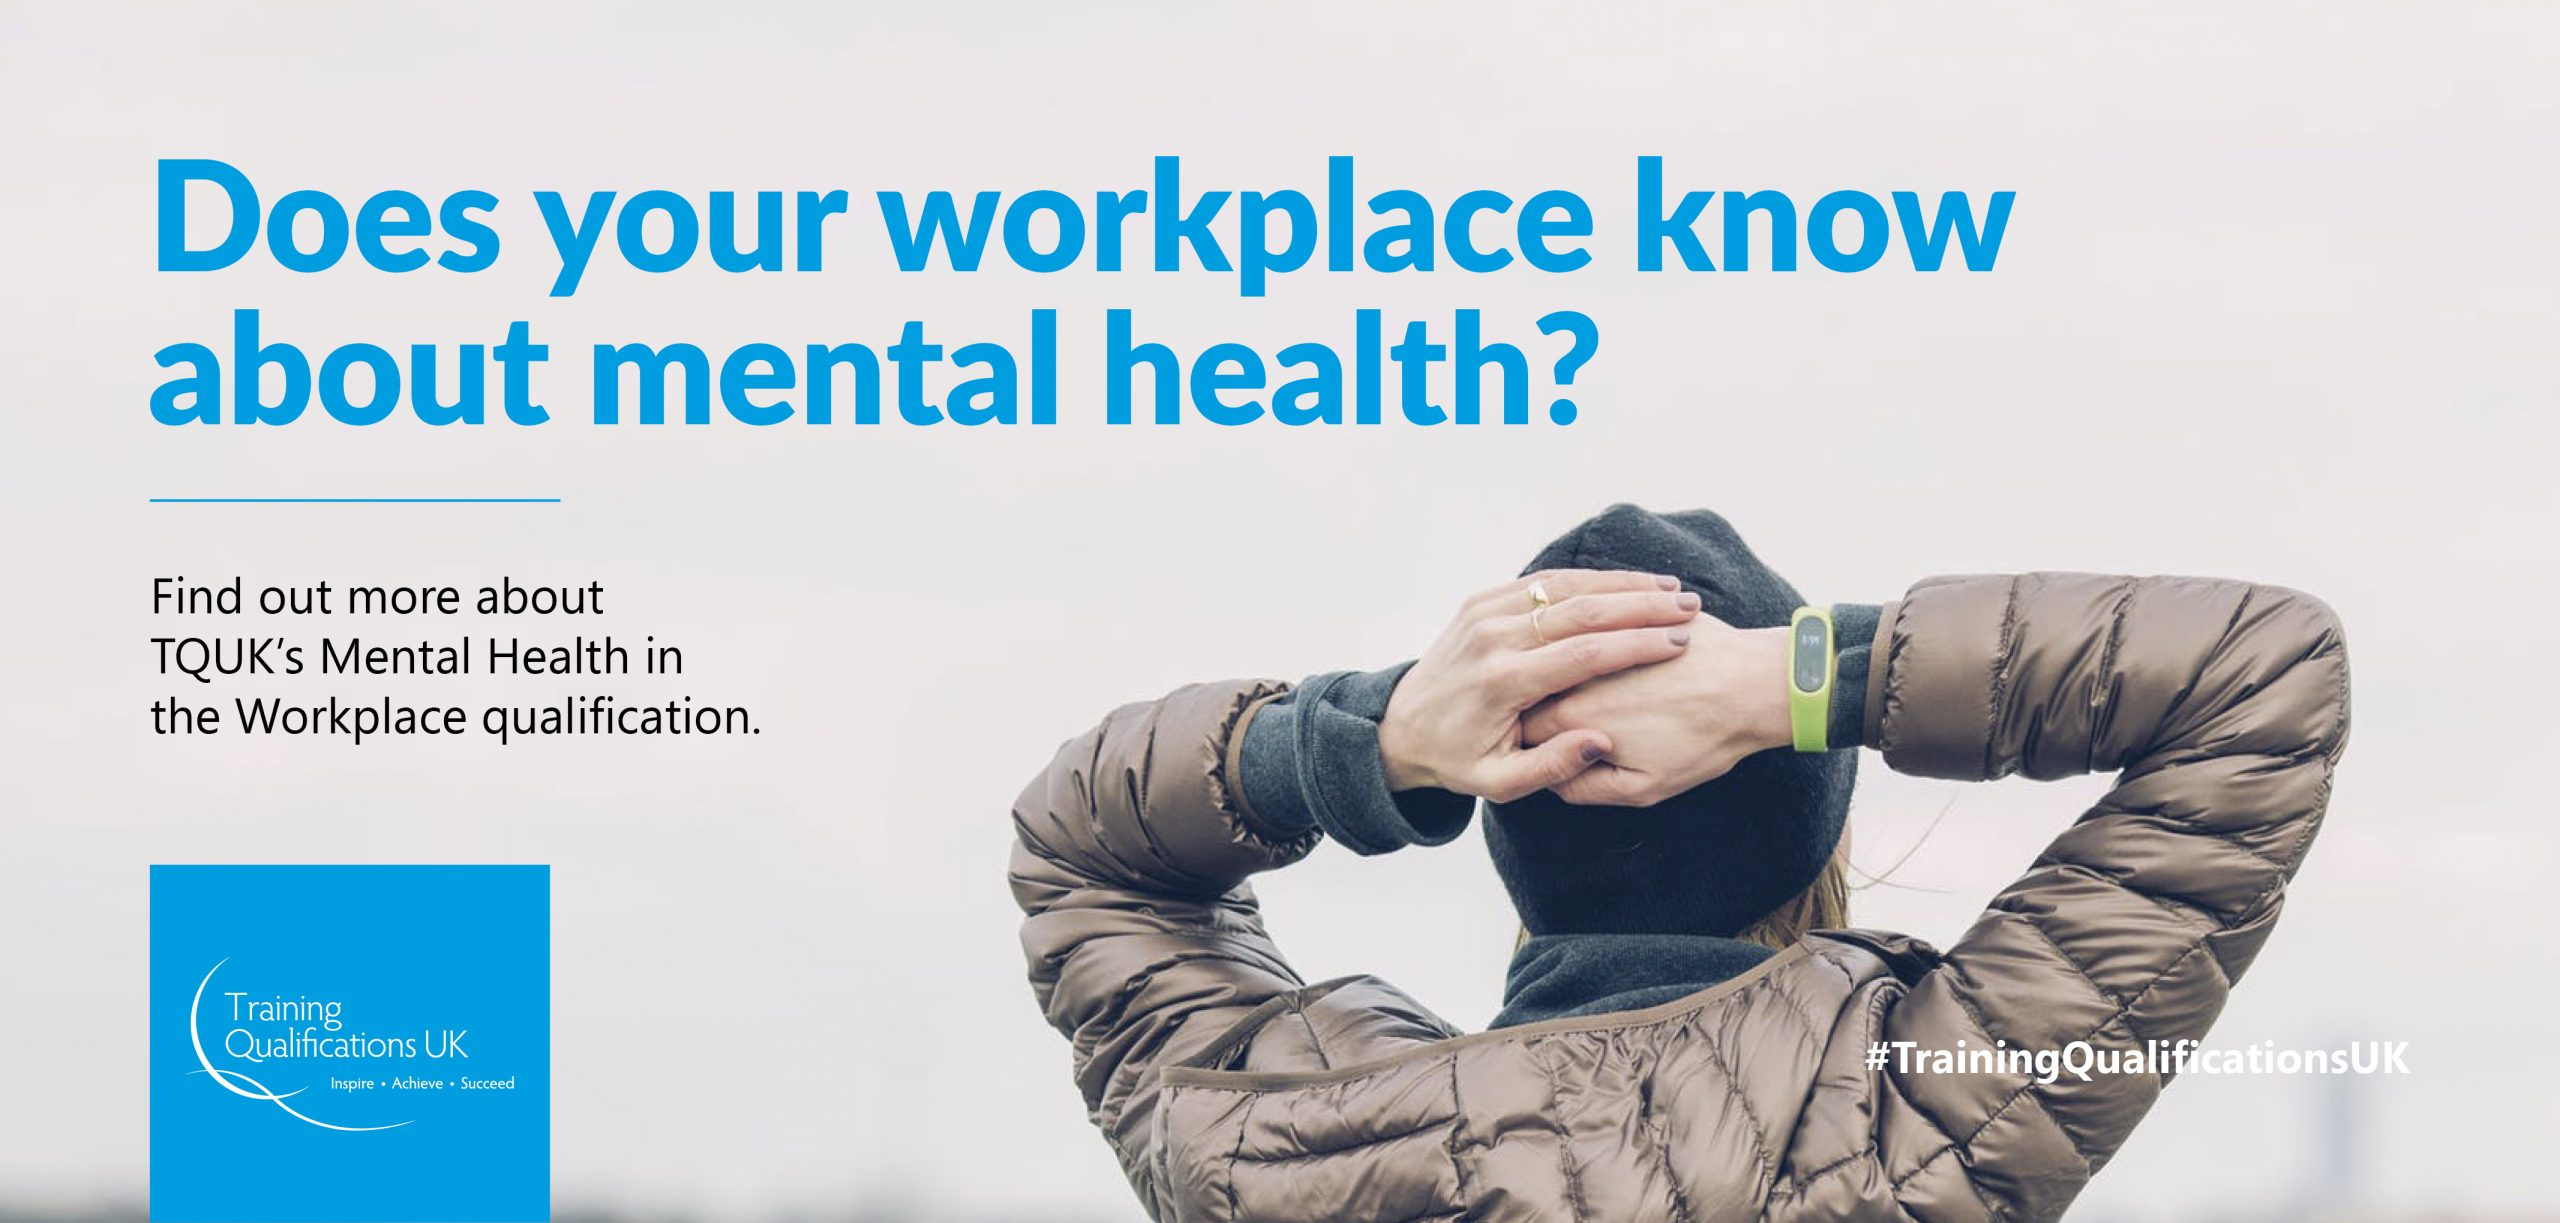 What do you know about mental health in the workplace?